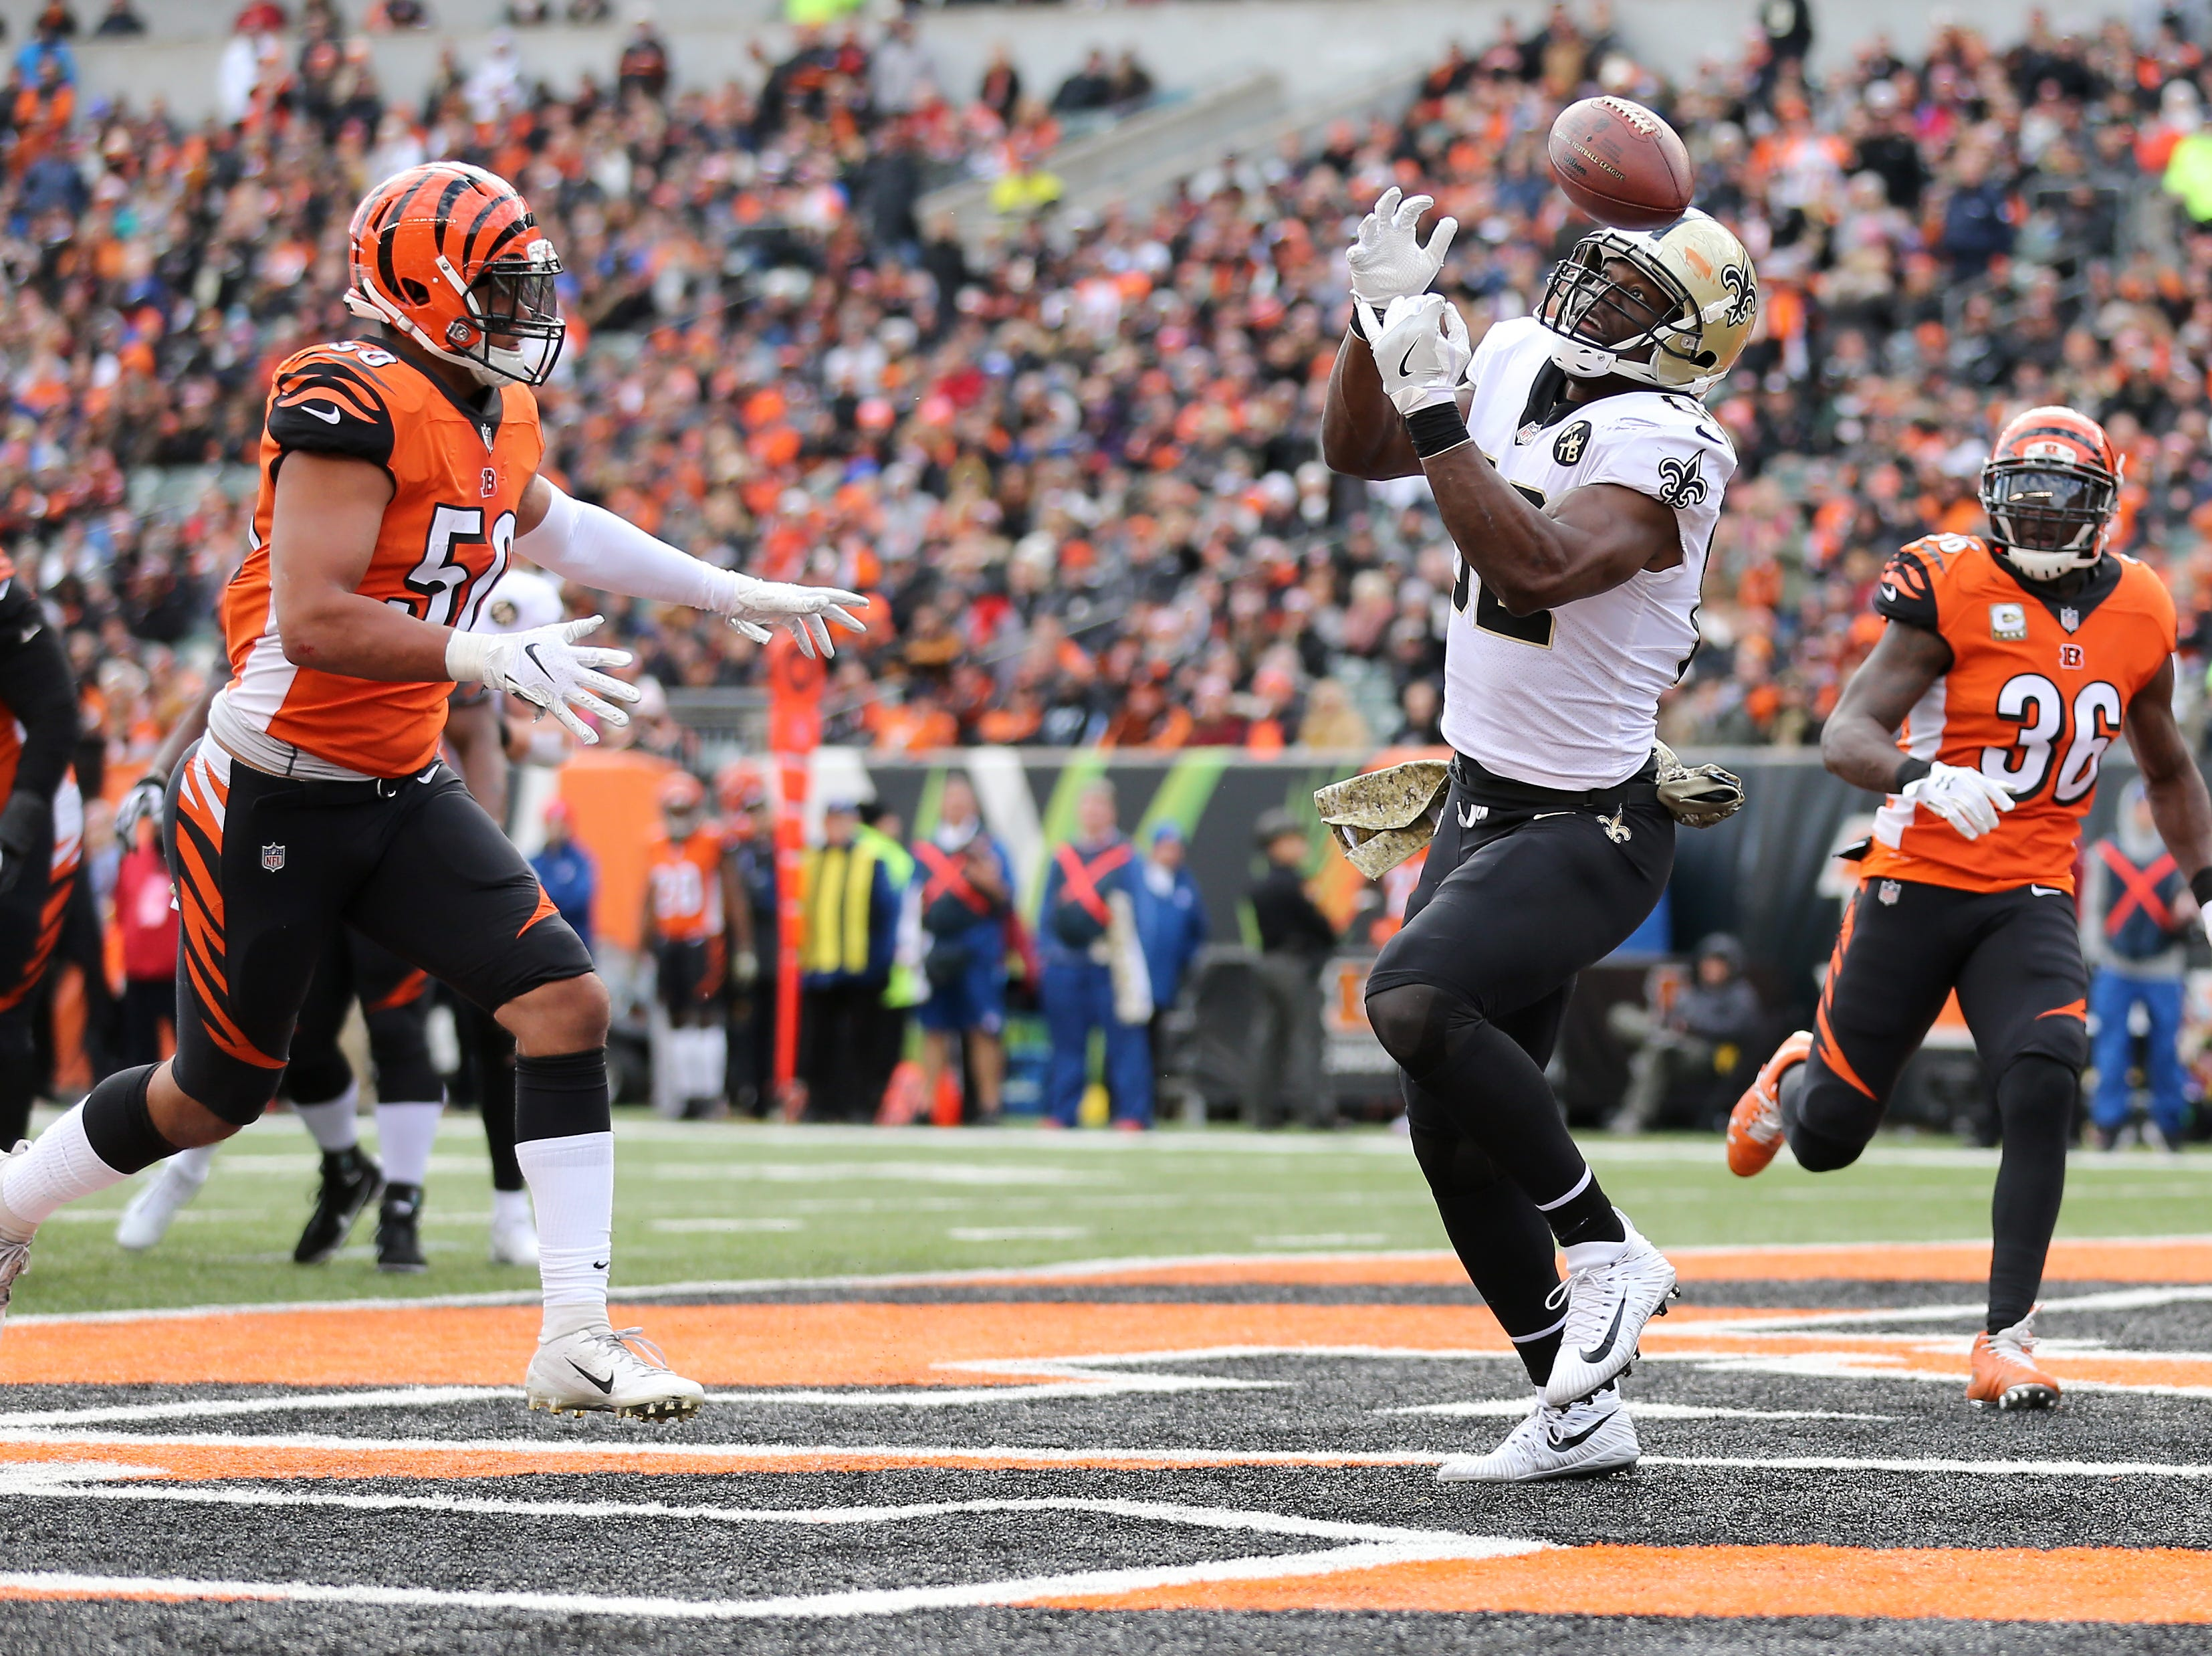 New Orleans Saints tight end Benjamin Watson (82) in unable to complete a reception in the end zone in the second quarter of a Week 10 NFL game between the New Orleans Saints and the Cincinnati Bengals, Sunday, Nov. 11, 2018, at Paul Brown Stadium in Cincinnati.